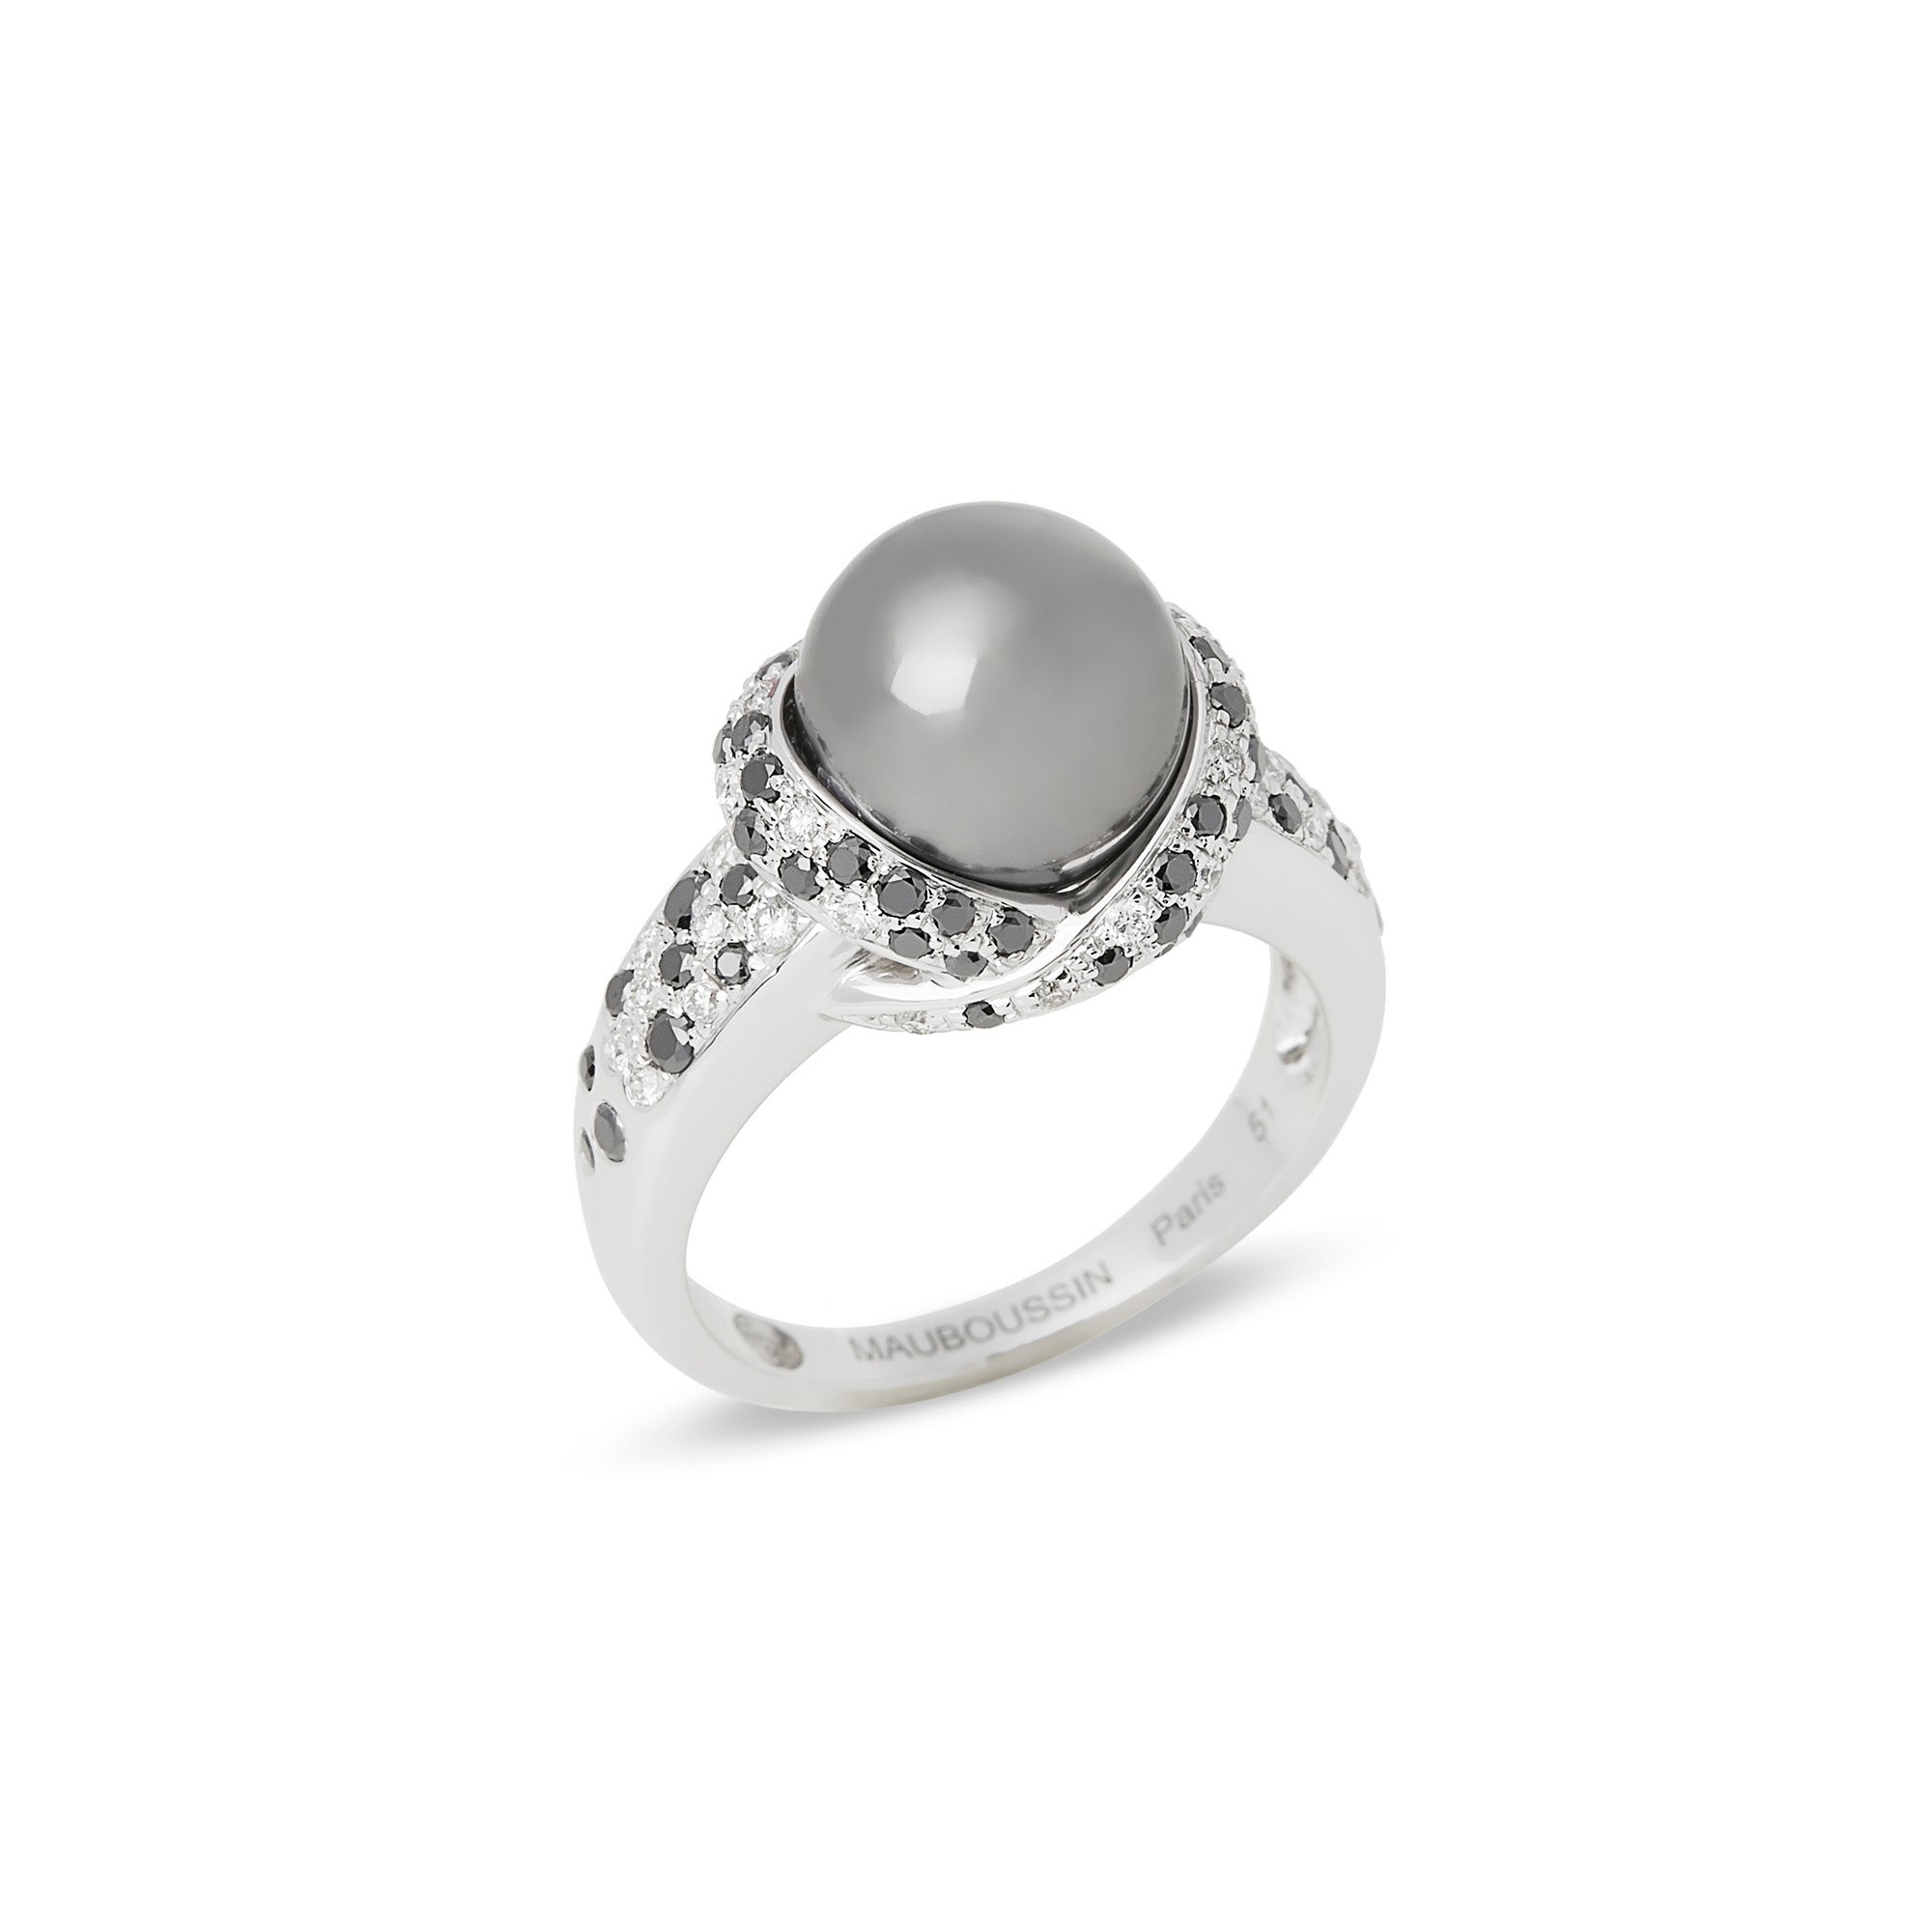 Mauboussin 18k White Gold Pearl and Diamond Caviar Mon Amour Ring